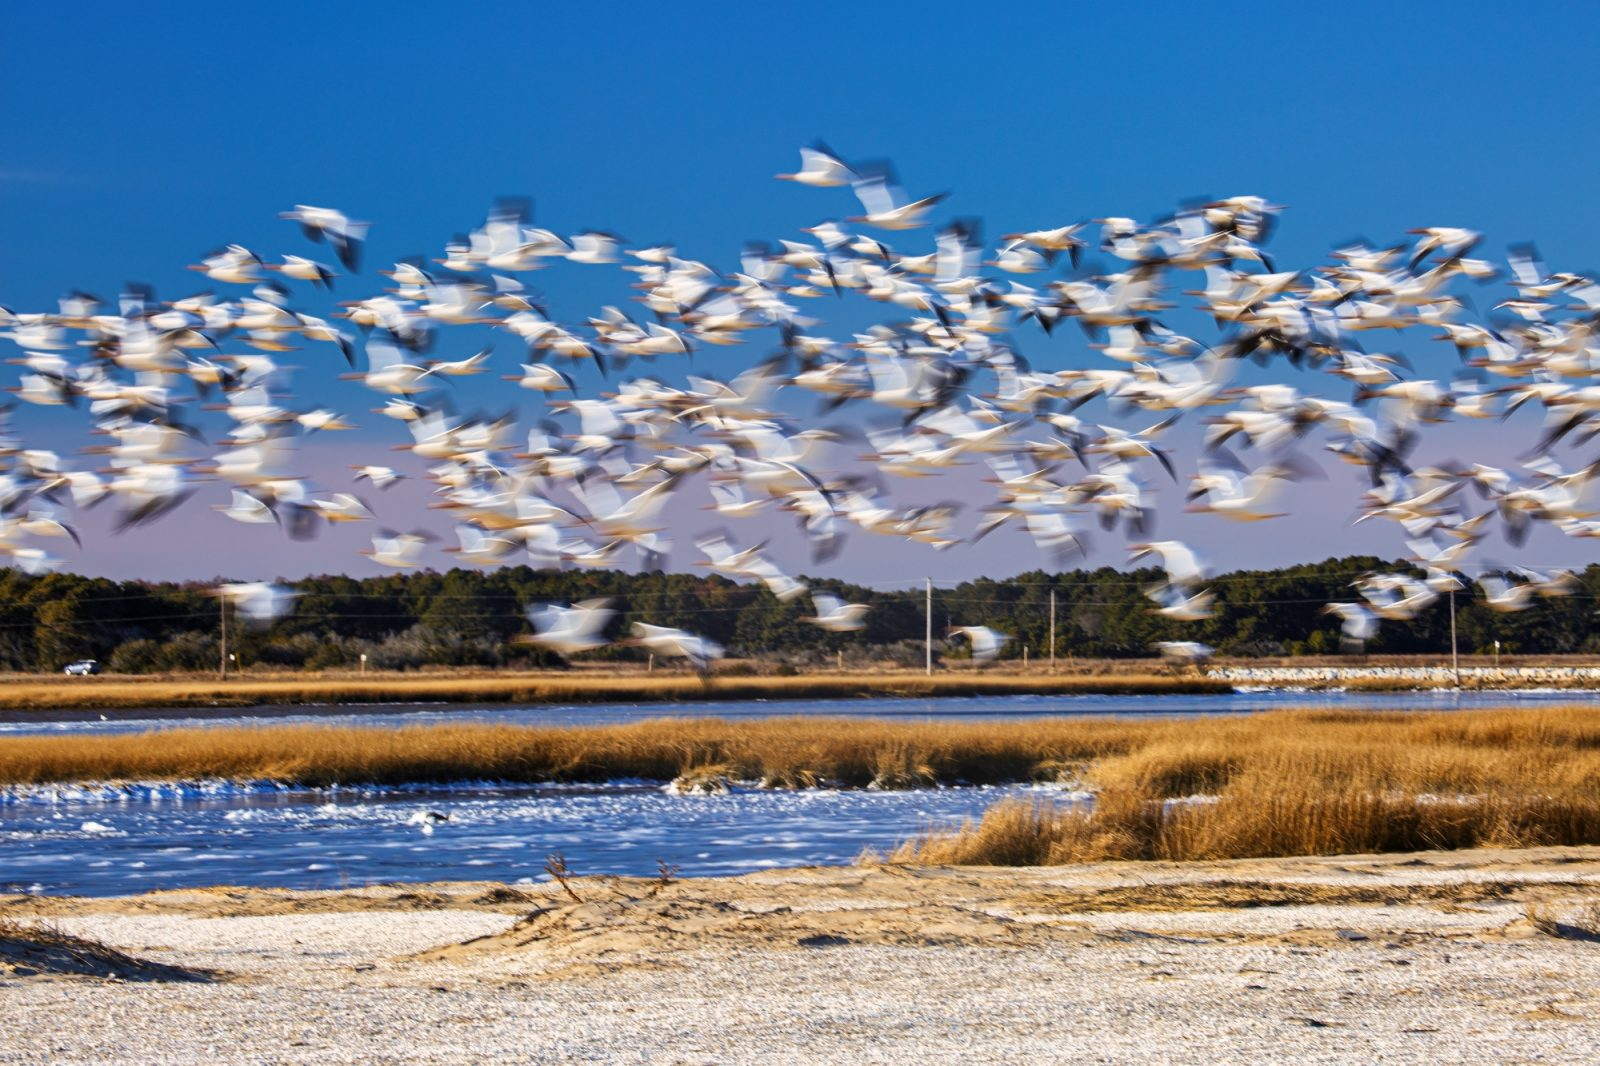 Snow Geese that looks like a paper airplane